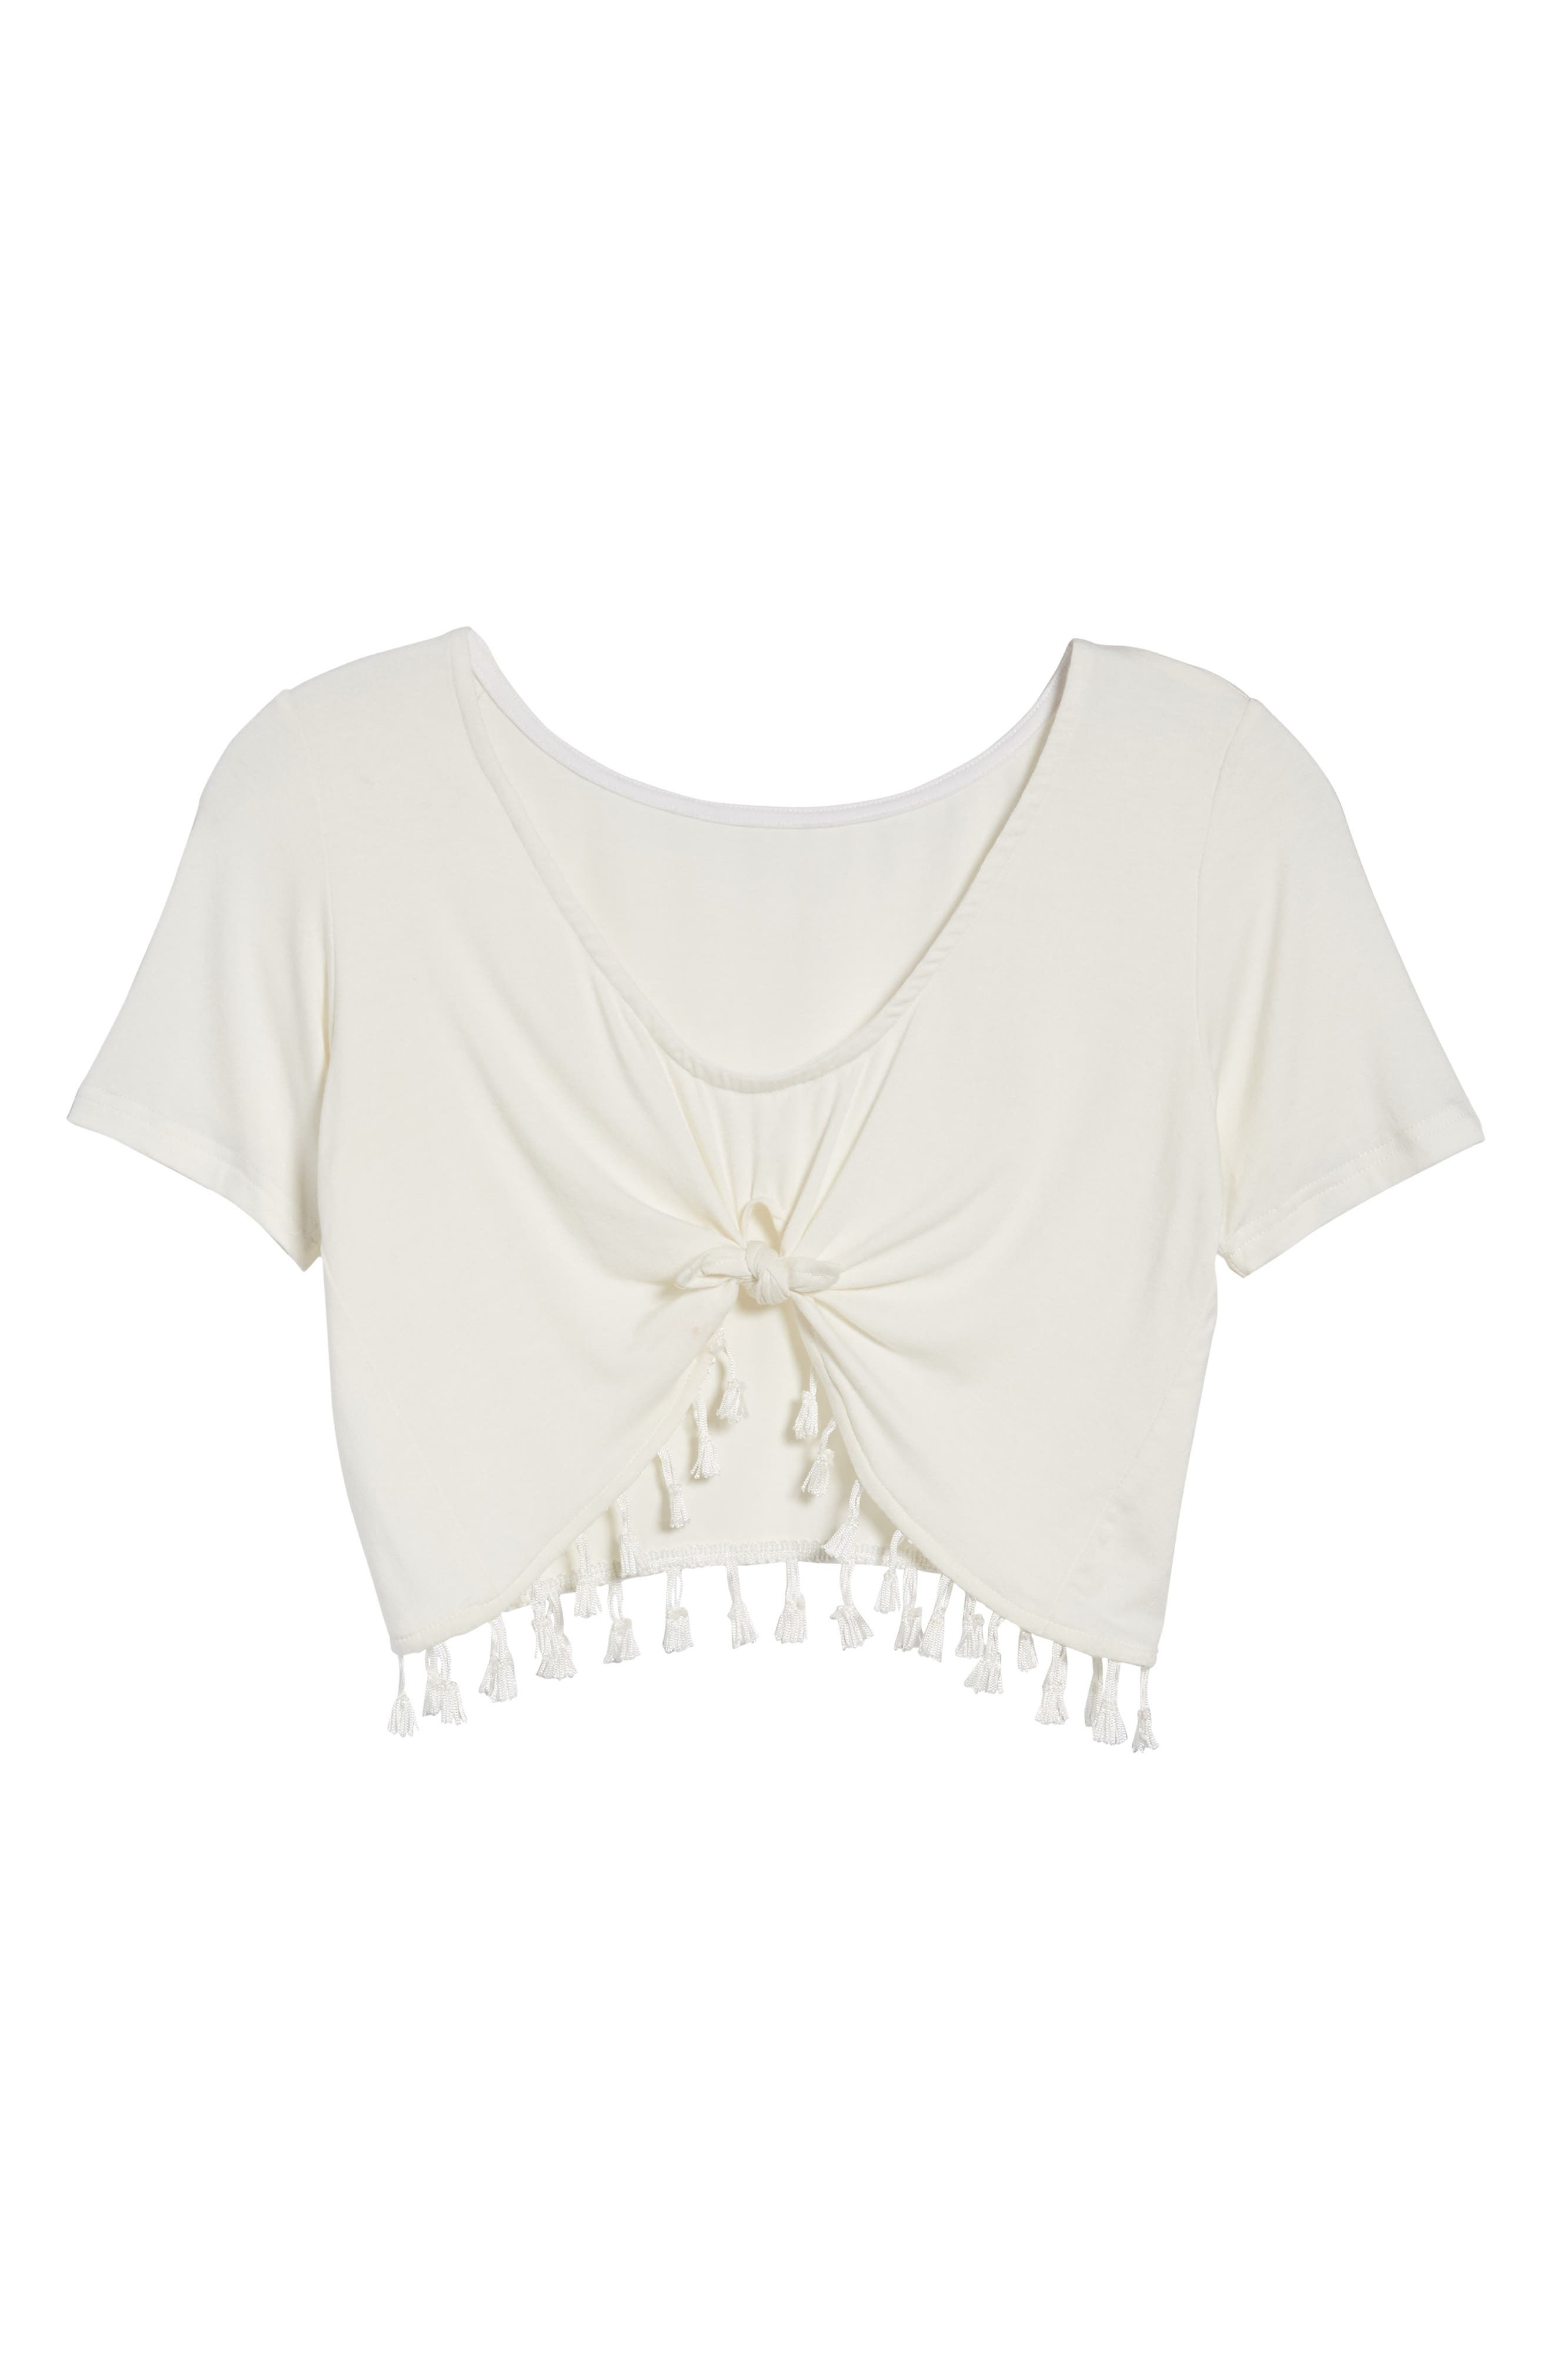 Show It Off Tassel Crop Top,                             Alternate thumbnail 8, color,                             Ivory